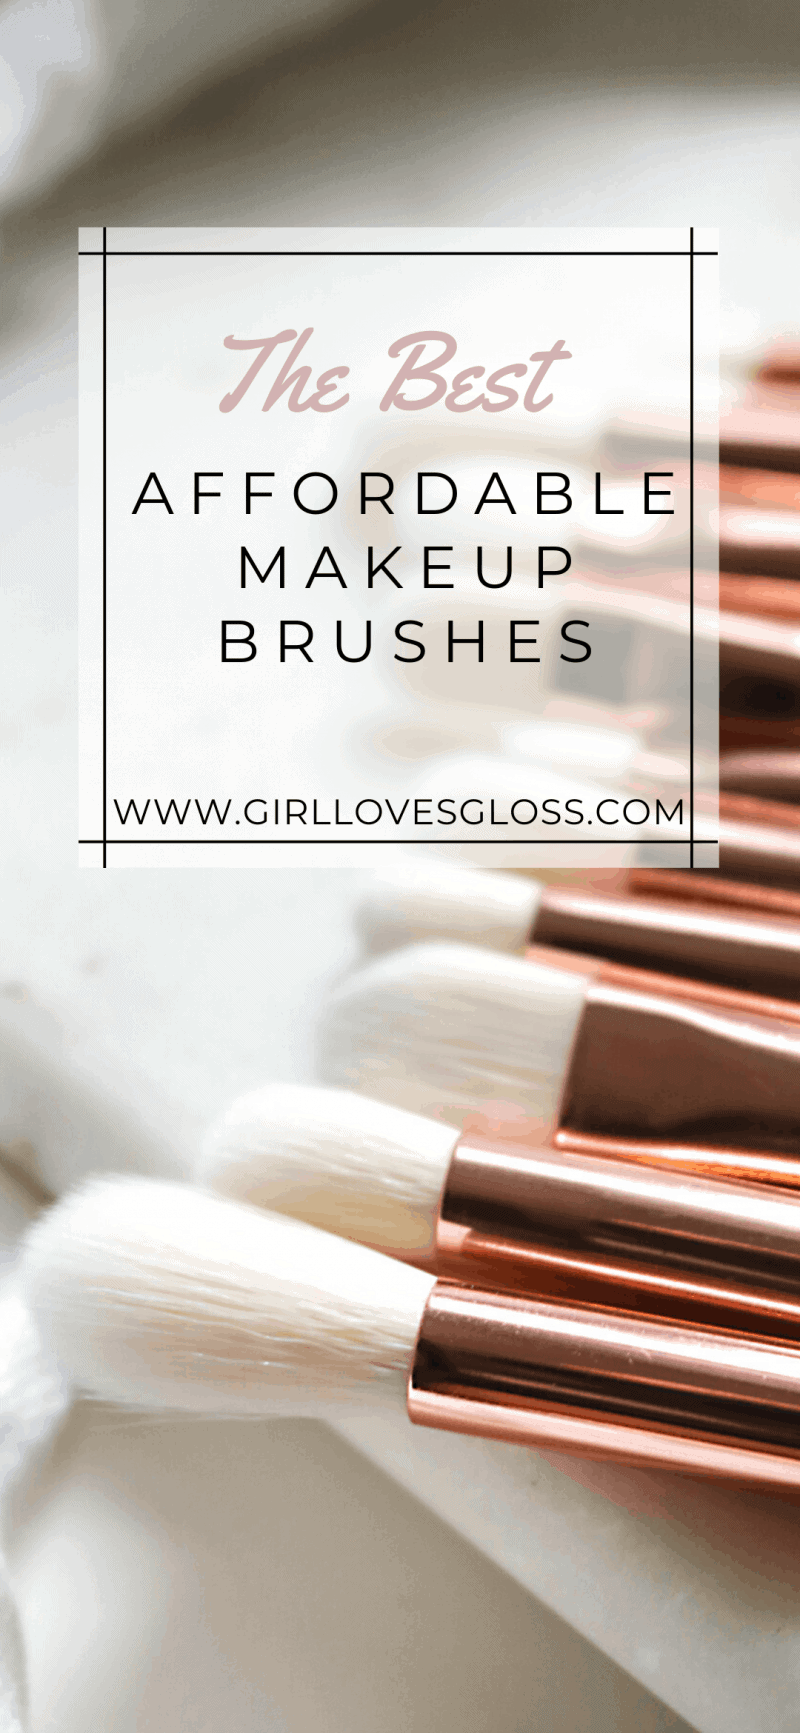 The Best Affordable Makeup Brushes